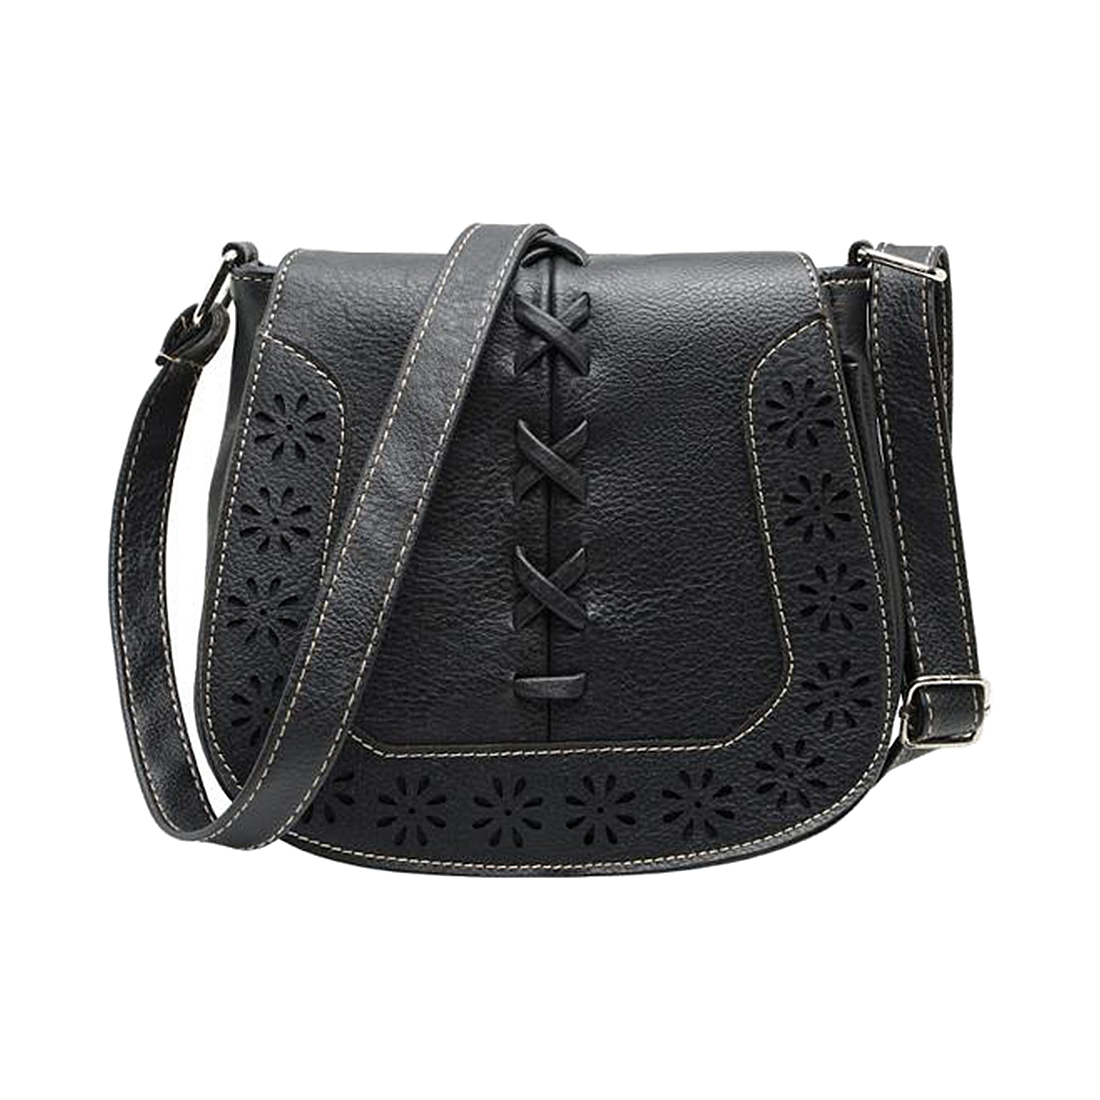 FGGS Hot Fashion Women Leather Handbags Retro Hollow Out Crossbody Shoulder Bag Hollow Out Lady Vintage Bag bags Black europe style hollow out handbags women pu leather crossbody shoulder bag